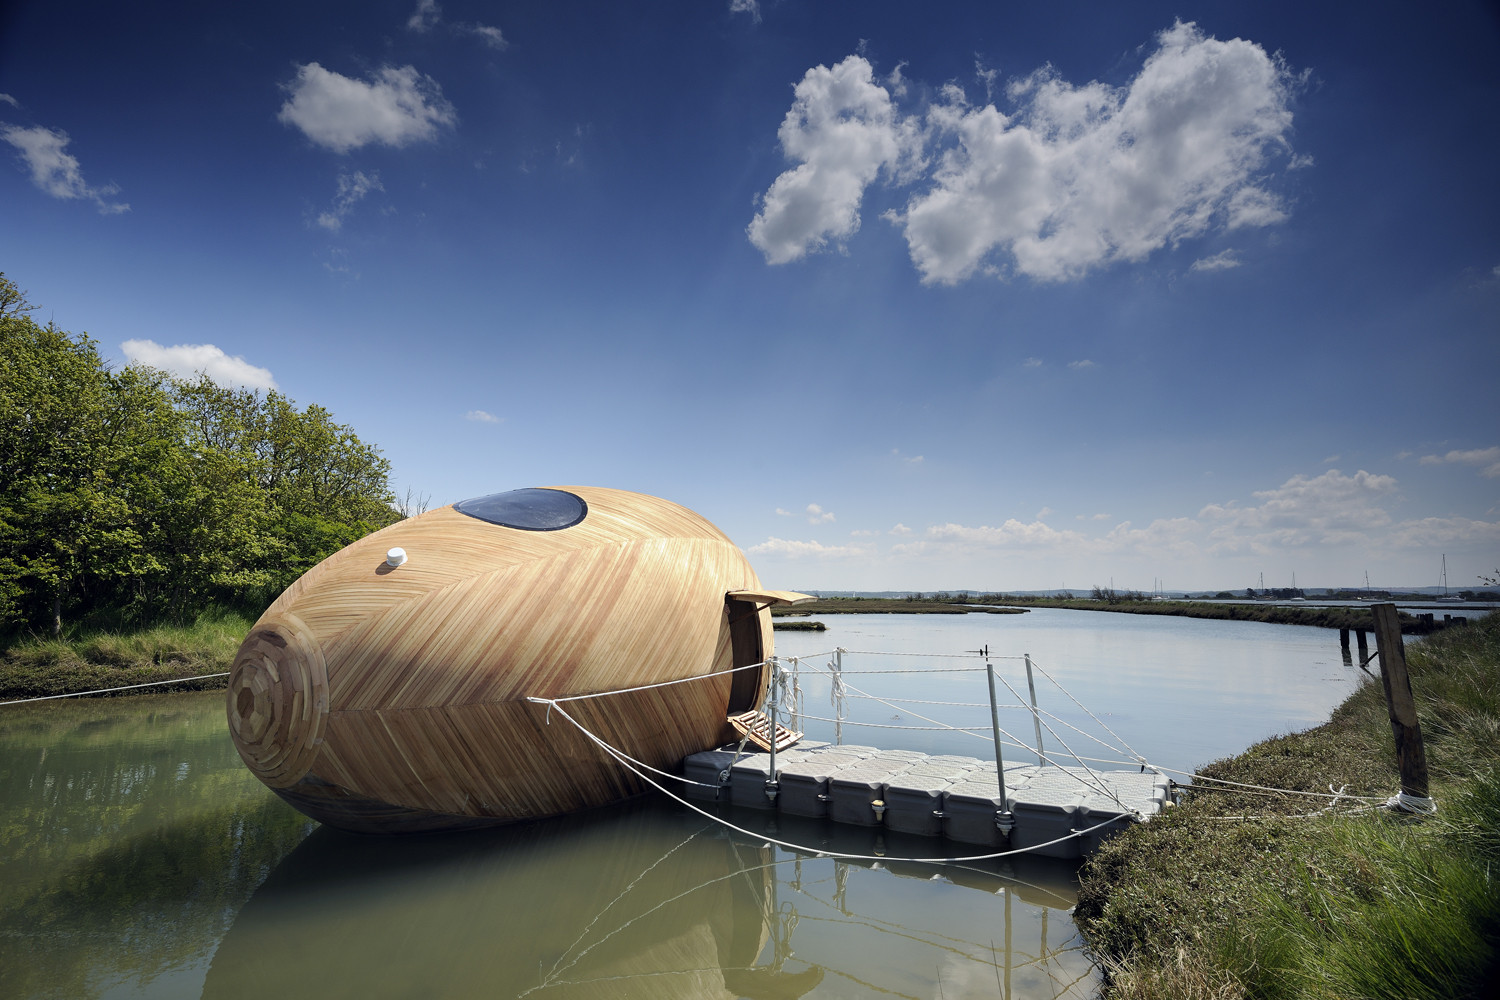 Get Inspired with Floating Architecture!